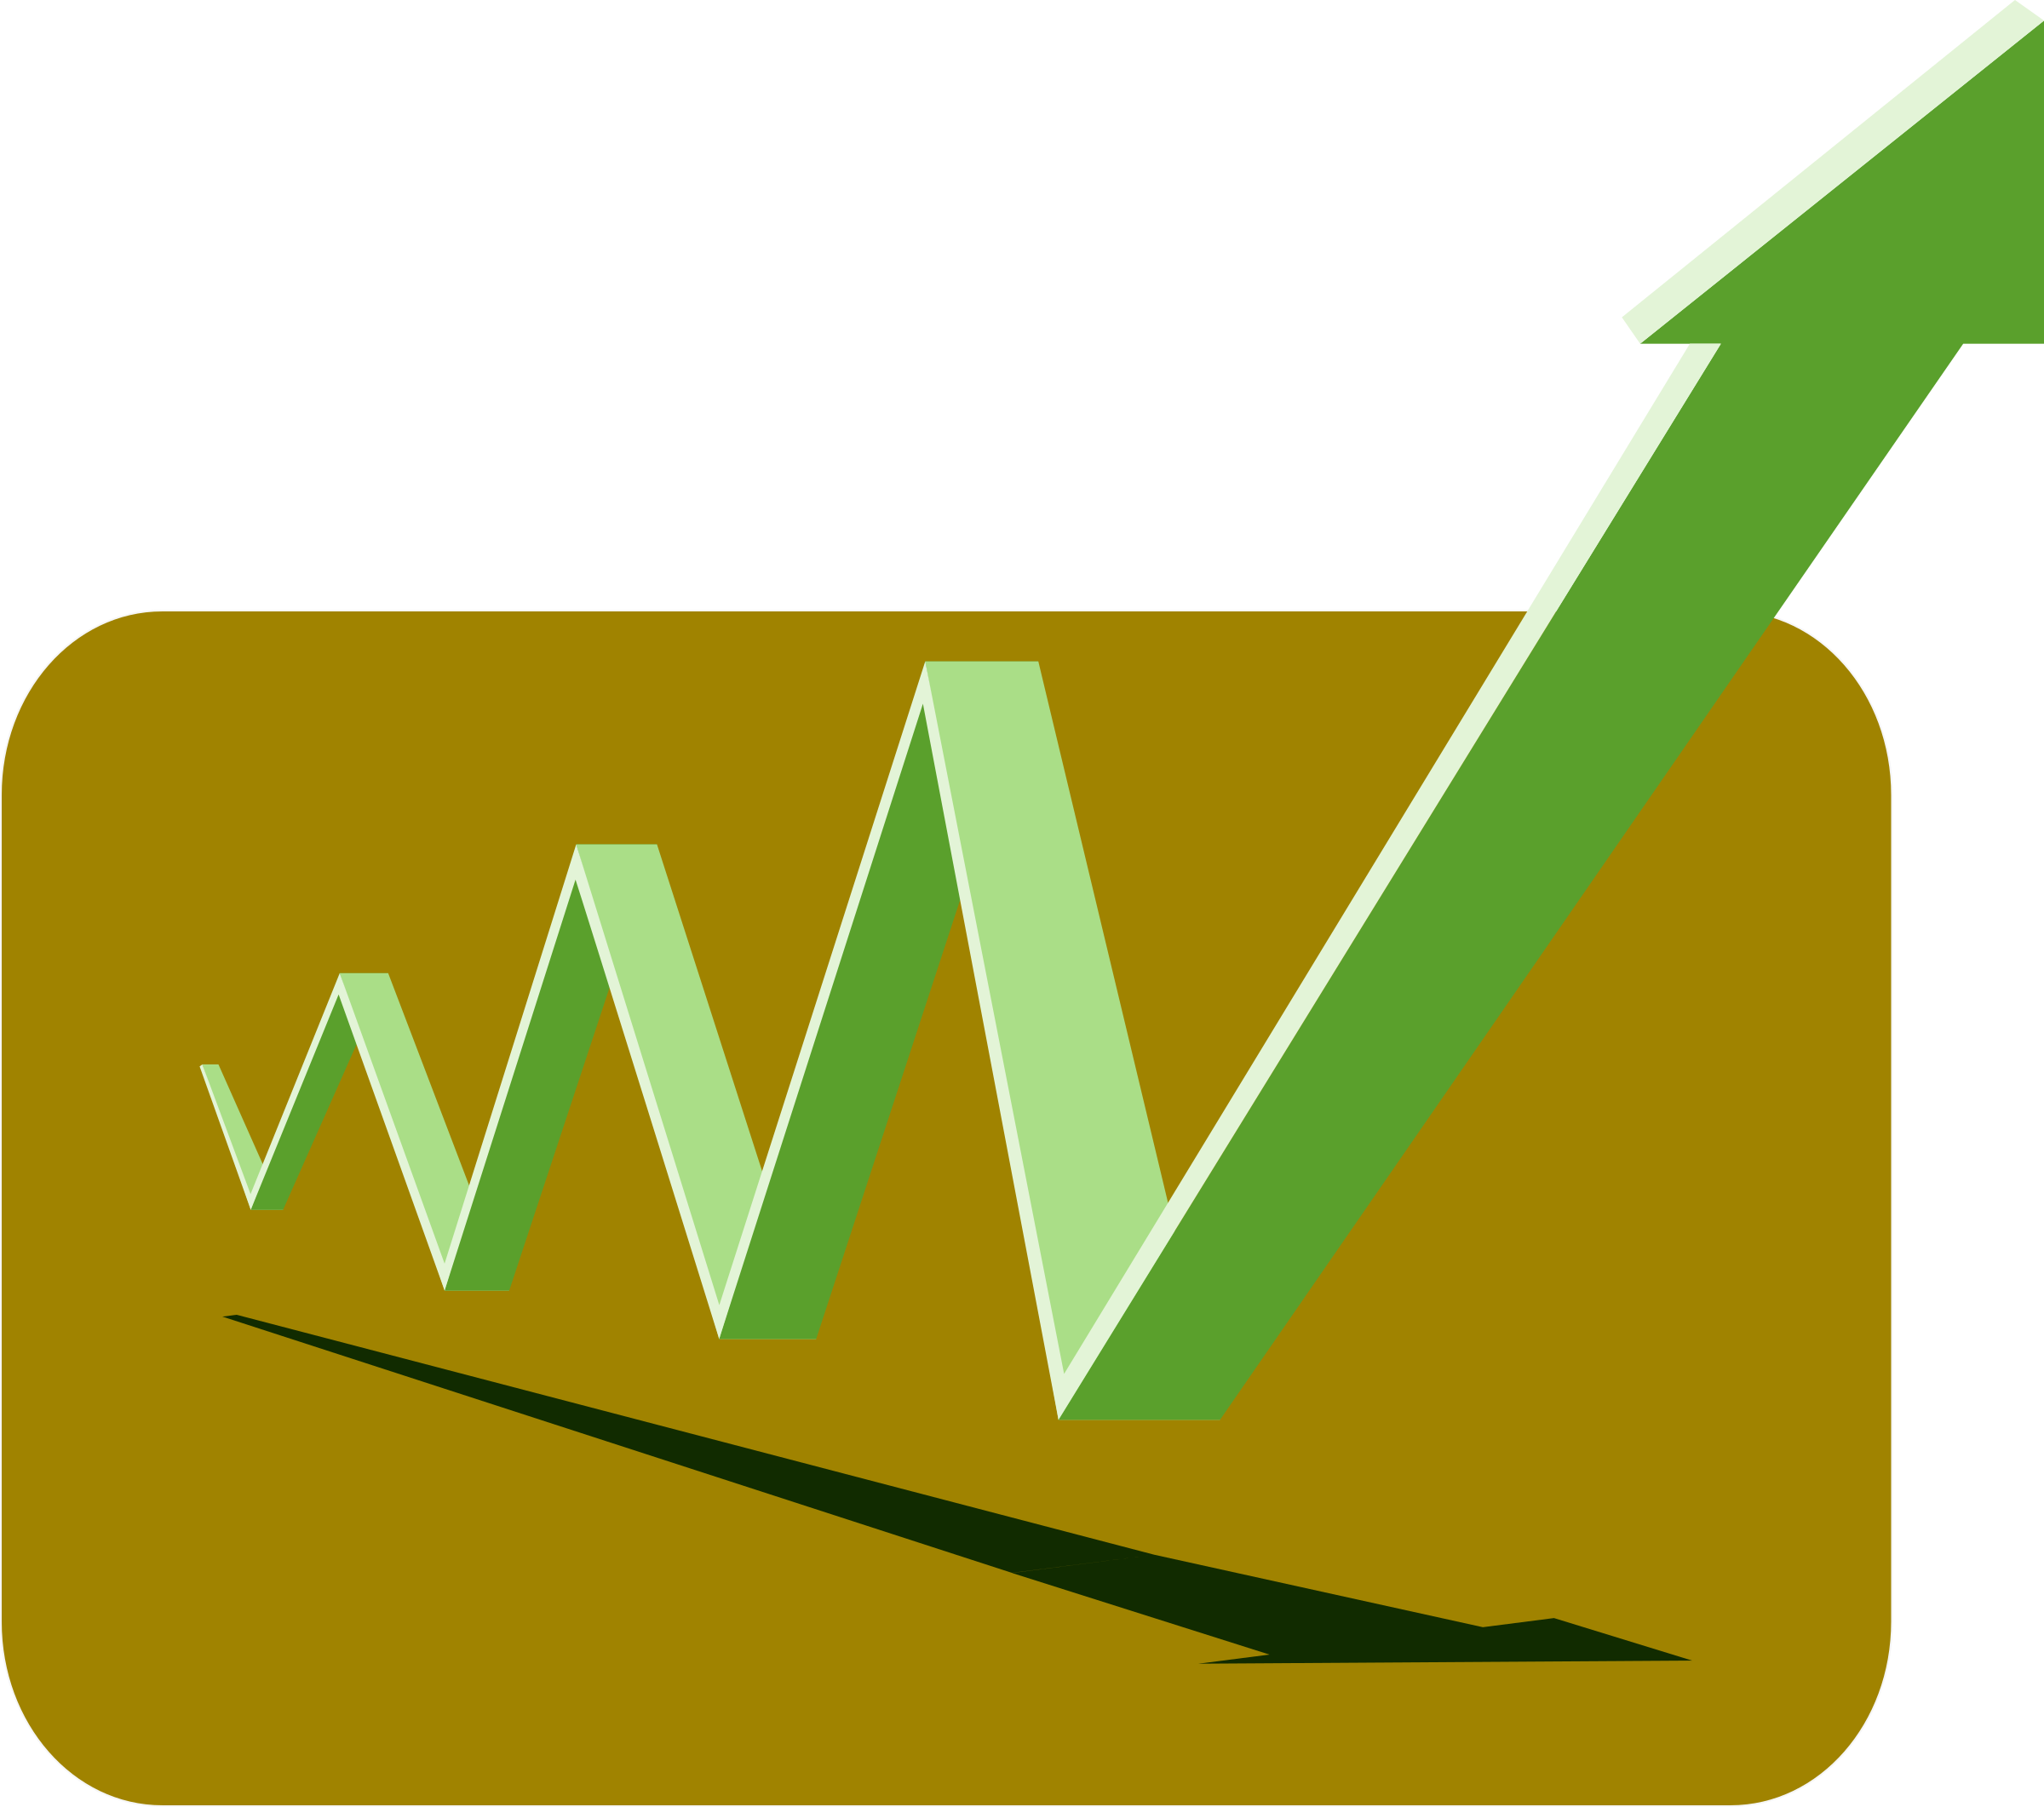 Financial clipart graph. Arrows green up icons